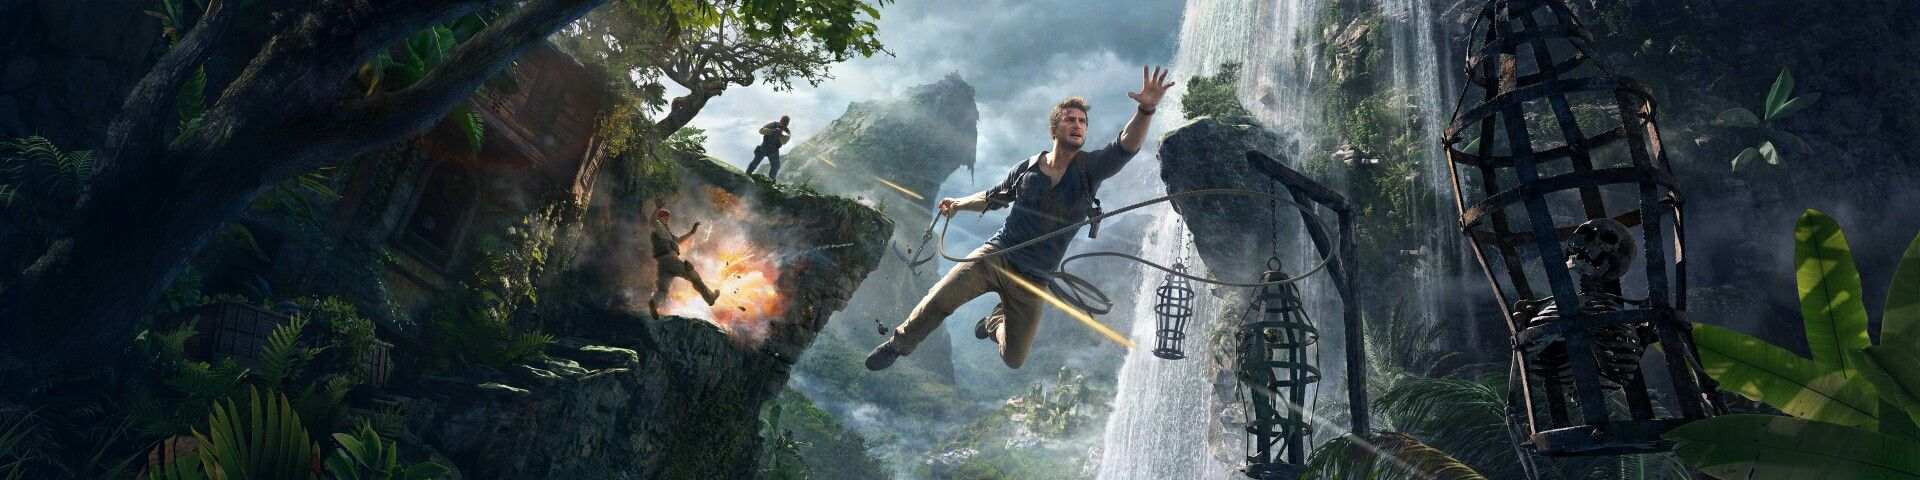 Uncharted 4 A Thief S End Nathan Drake Epic Jump 4k Hd